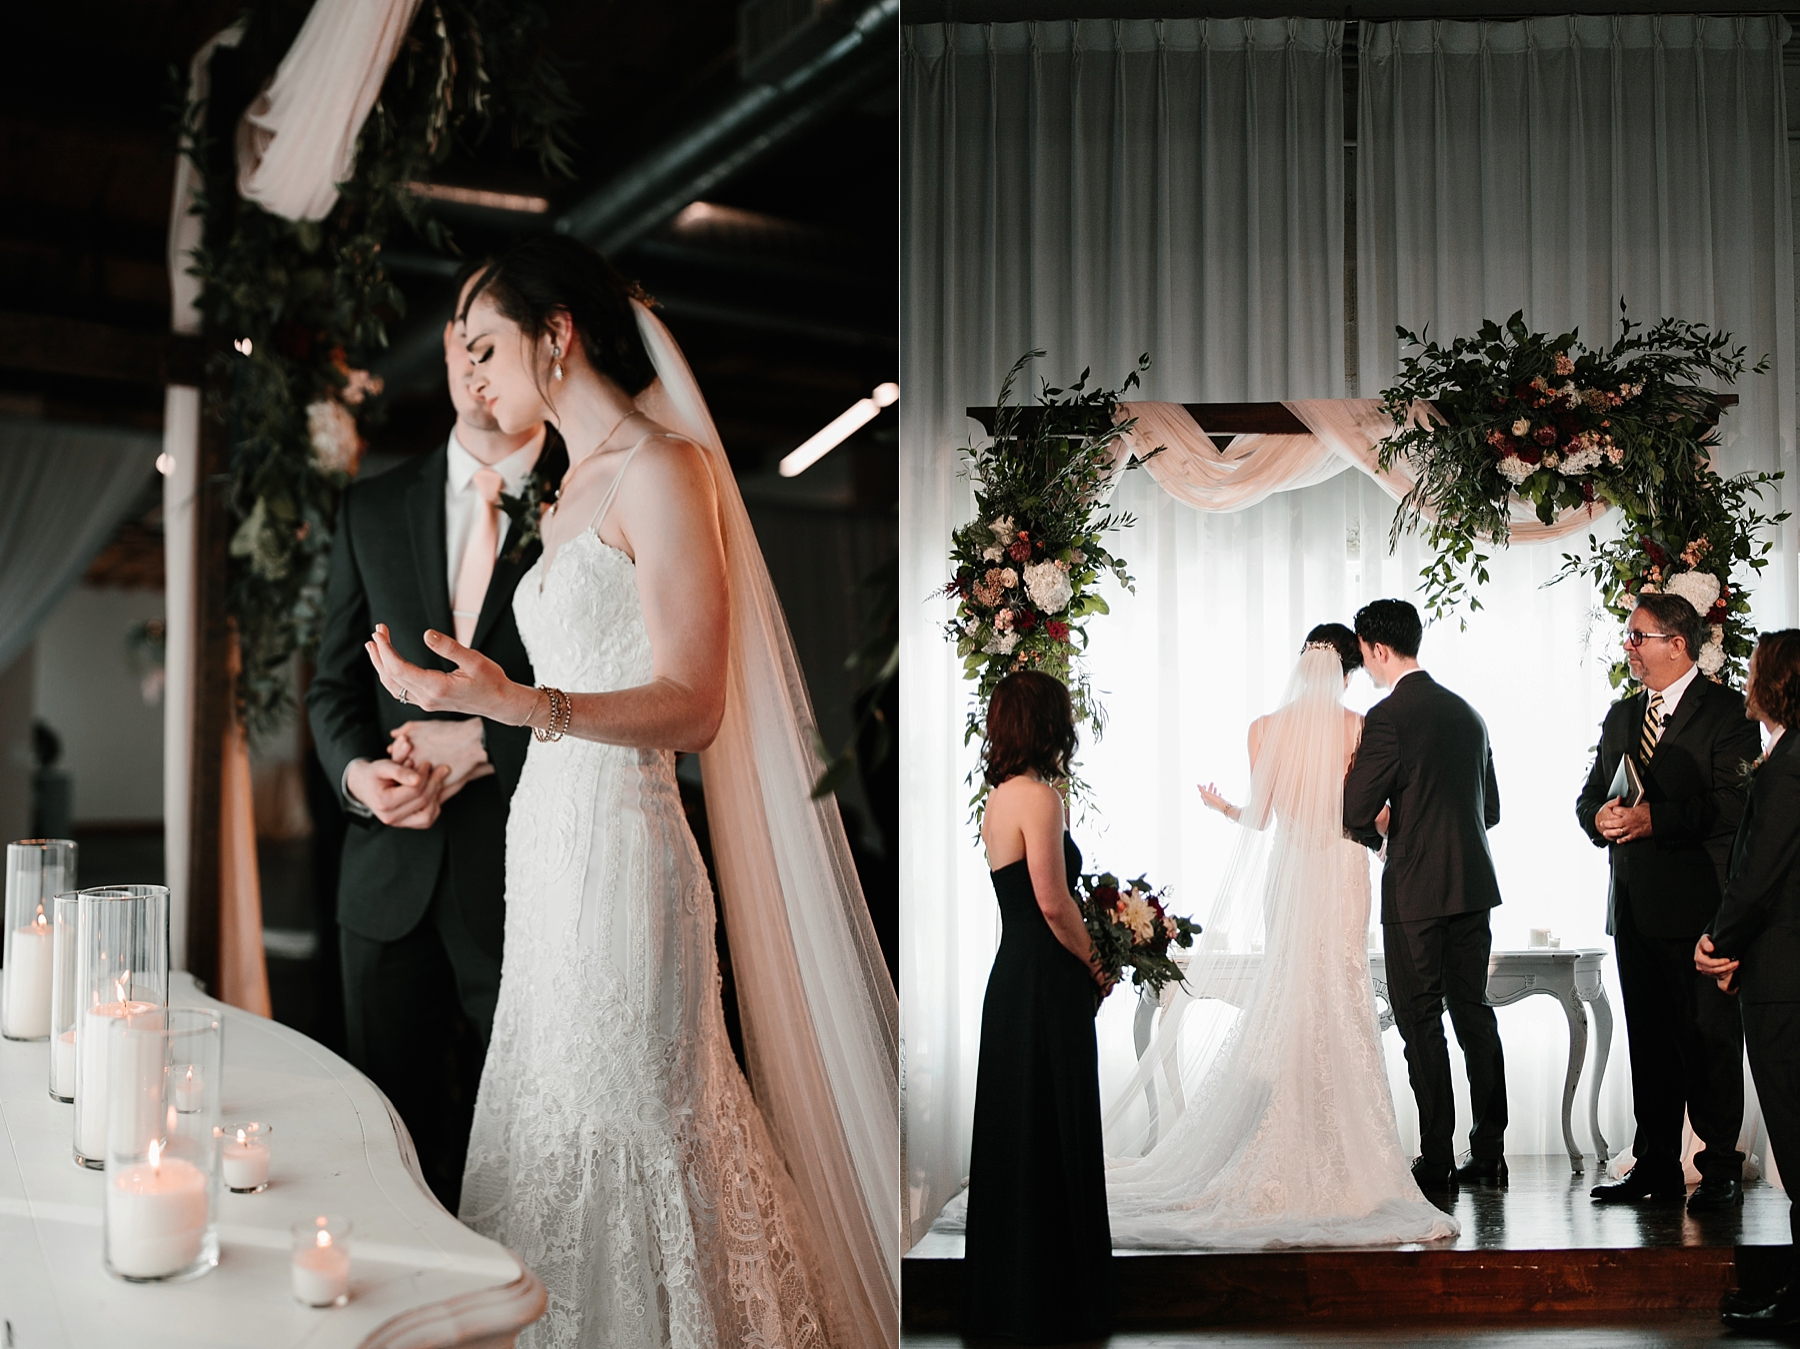 Emily + Caleb _ an elegant, intentional, industrial style wedding with navy + gold accents at 6500 in Dallas, TX by North Texas Wedding Photographer Rachel Meagan Photography _ 092